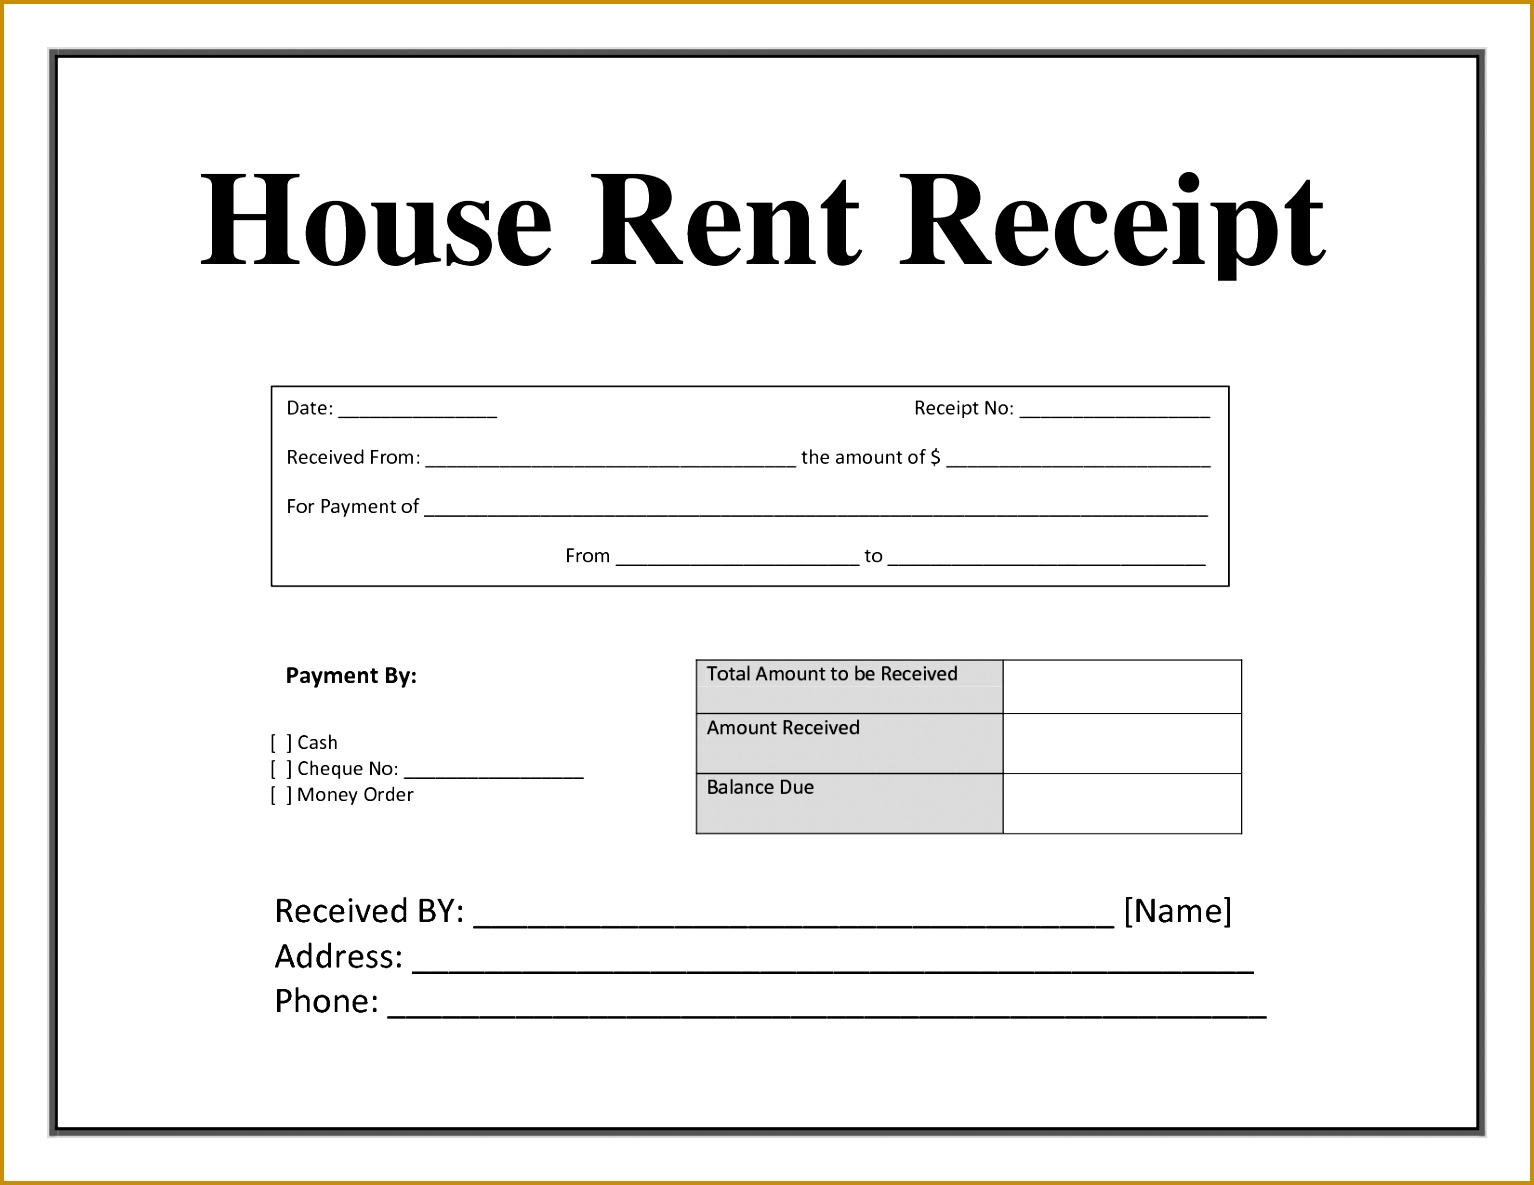 post room rent receipt template in india 11851534